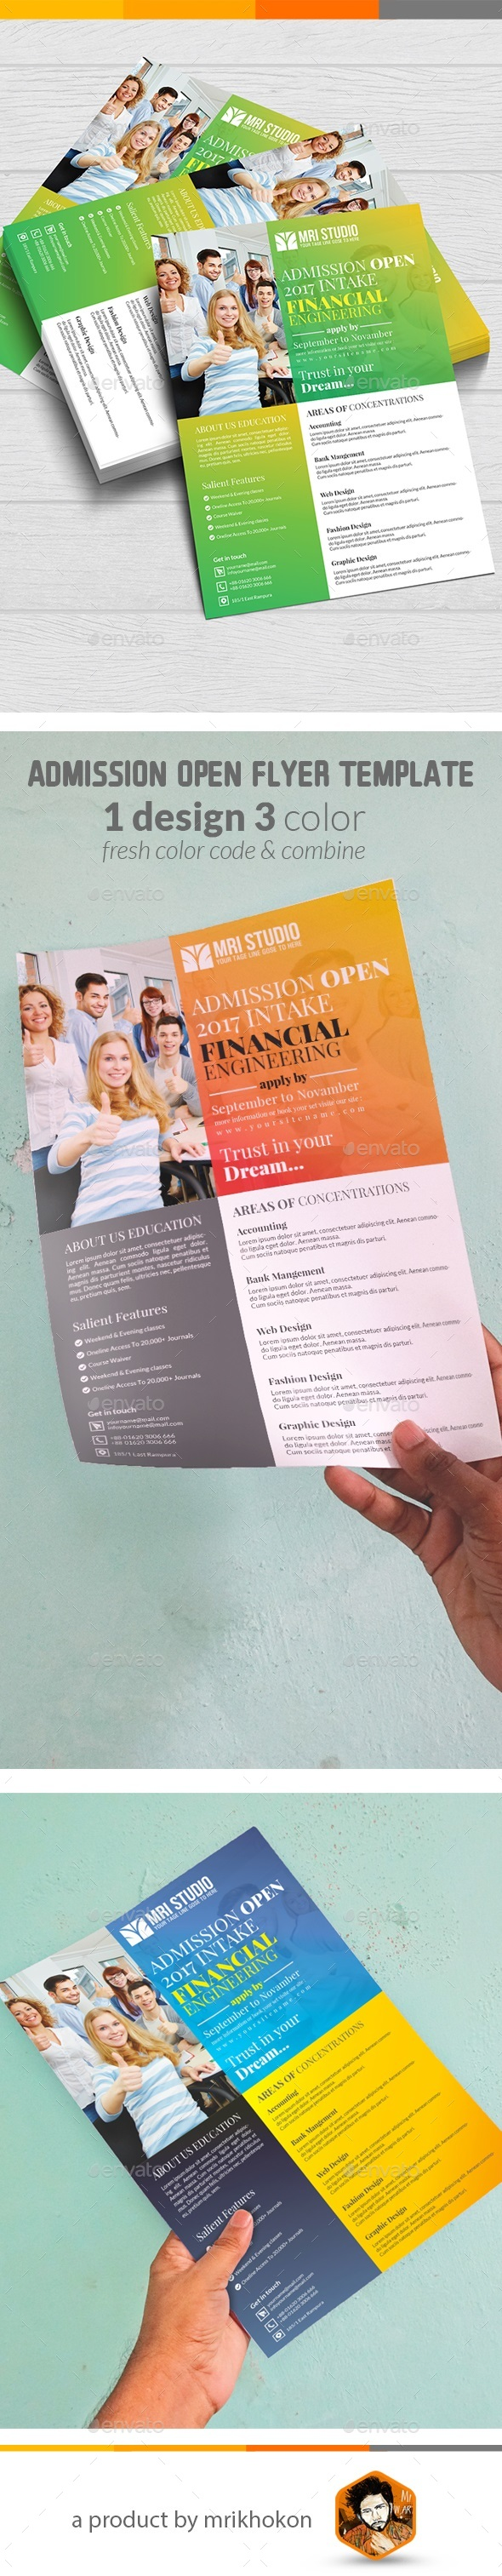 Admission Open Flyer Template - Flyers Print Templates